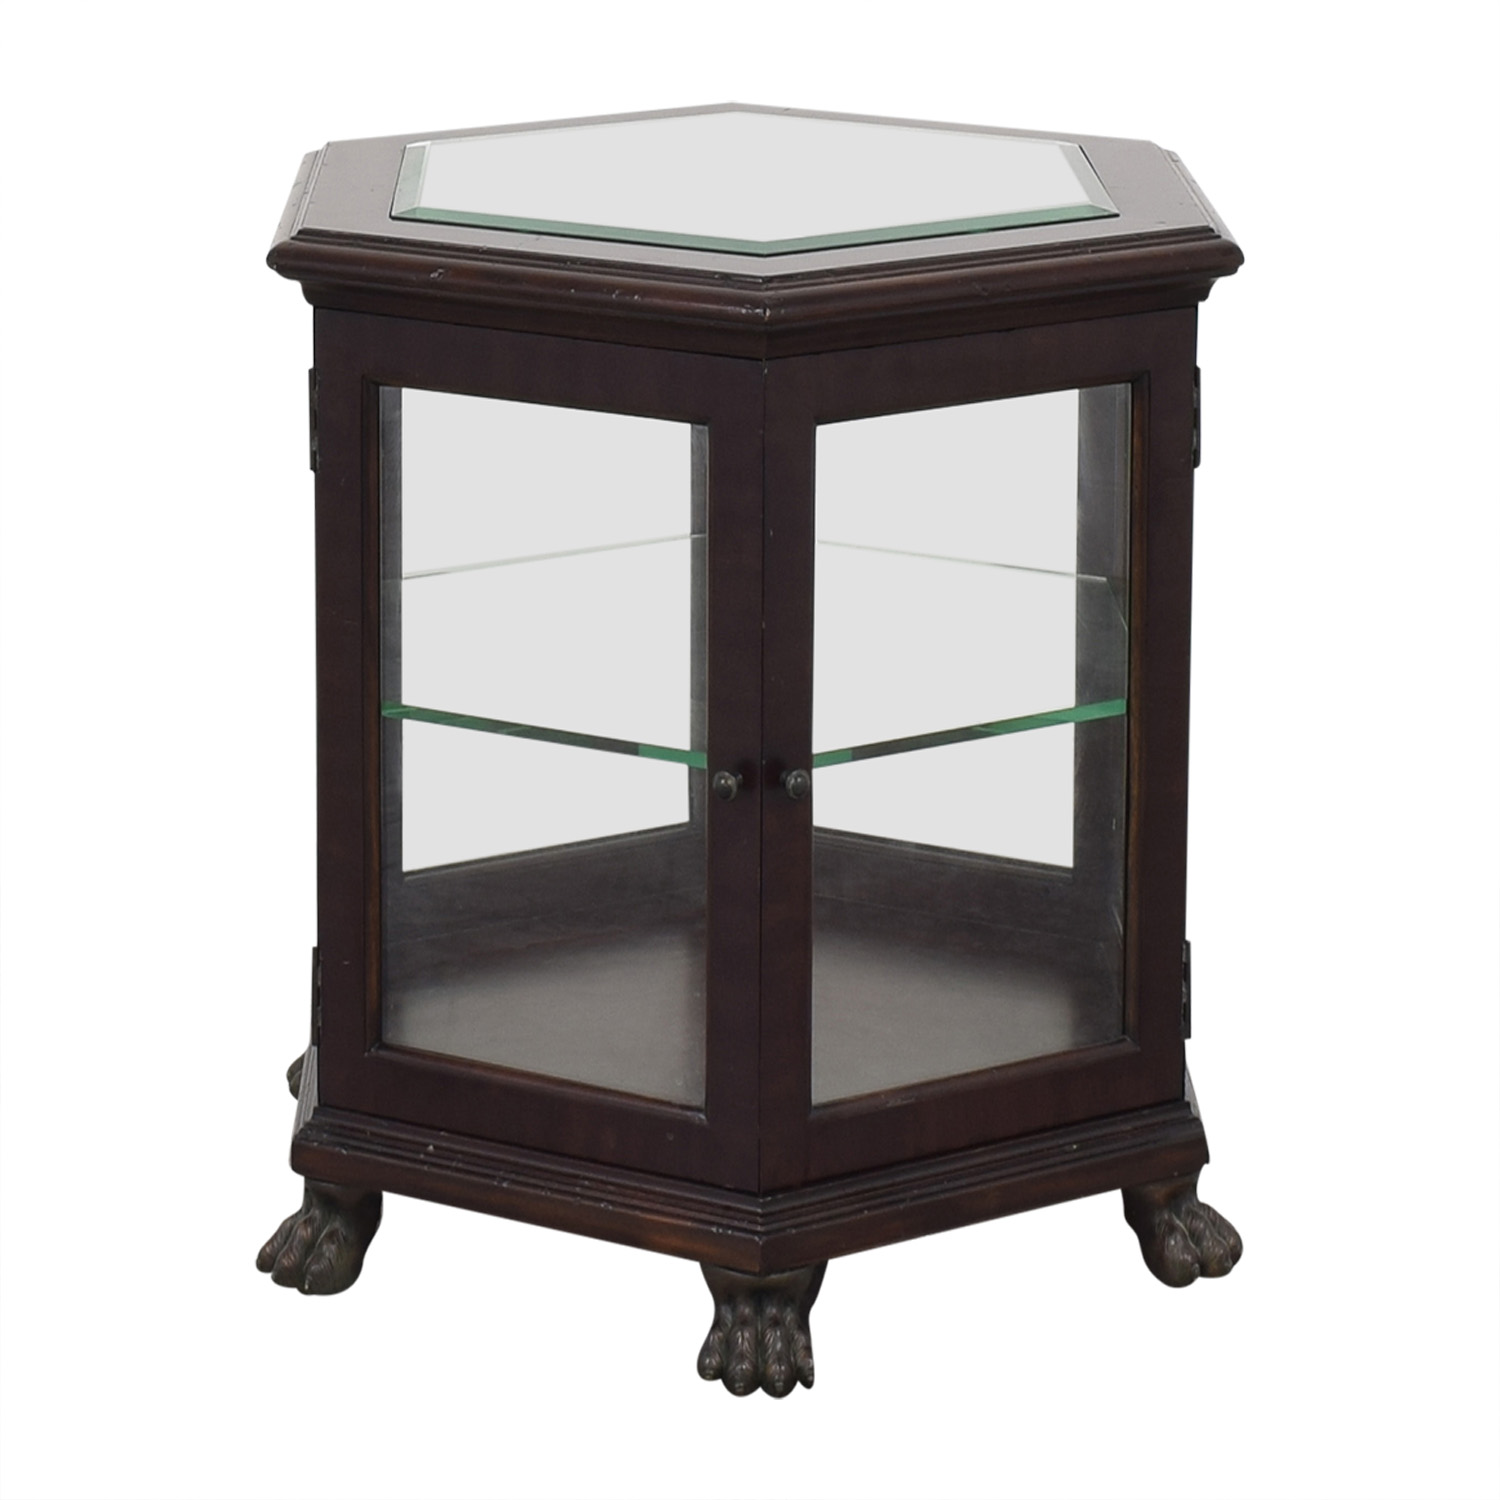 Thomasville Thomasville Hexagon End Table discount